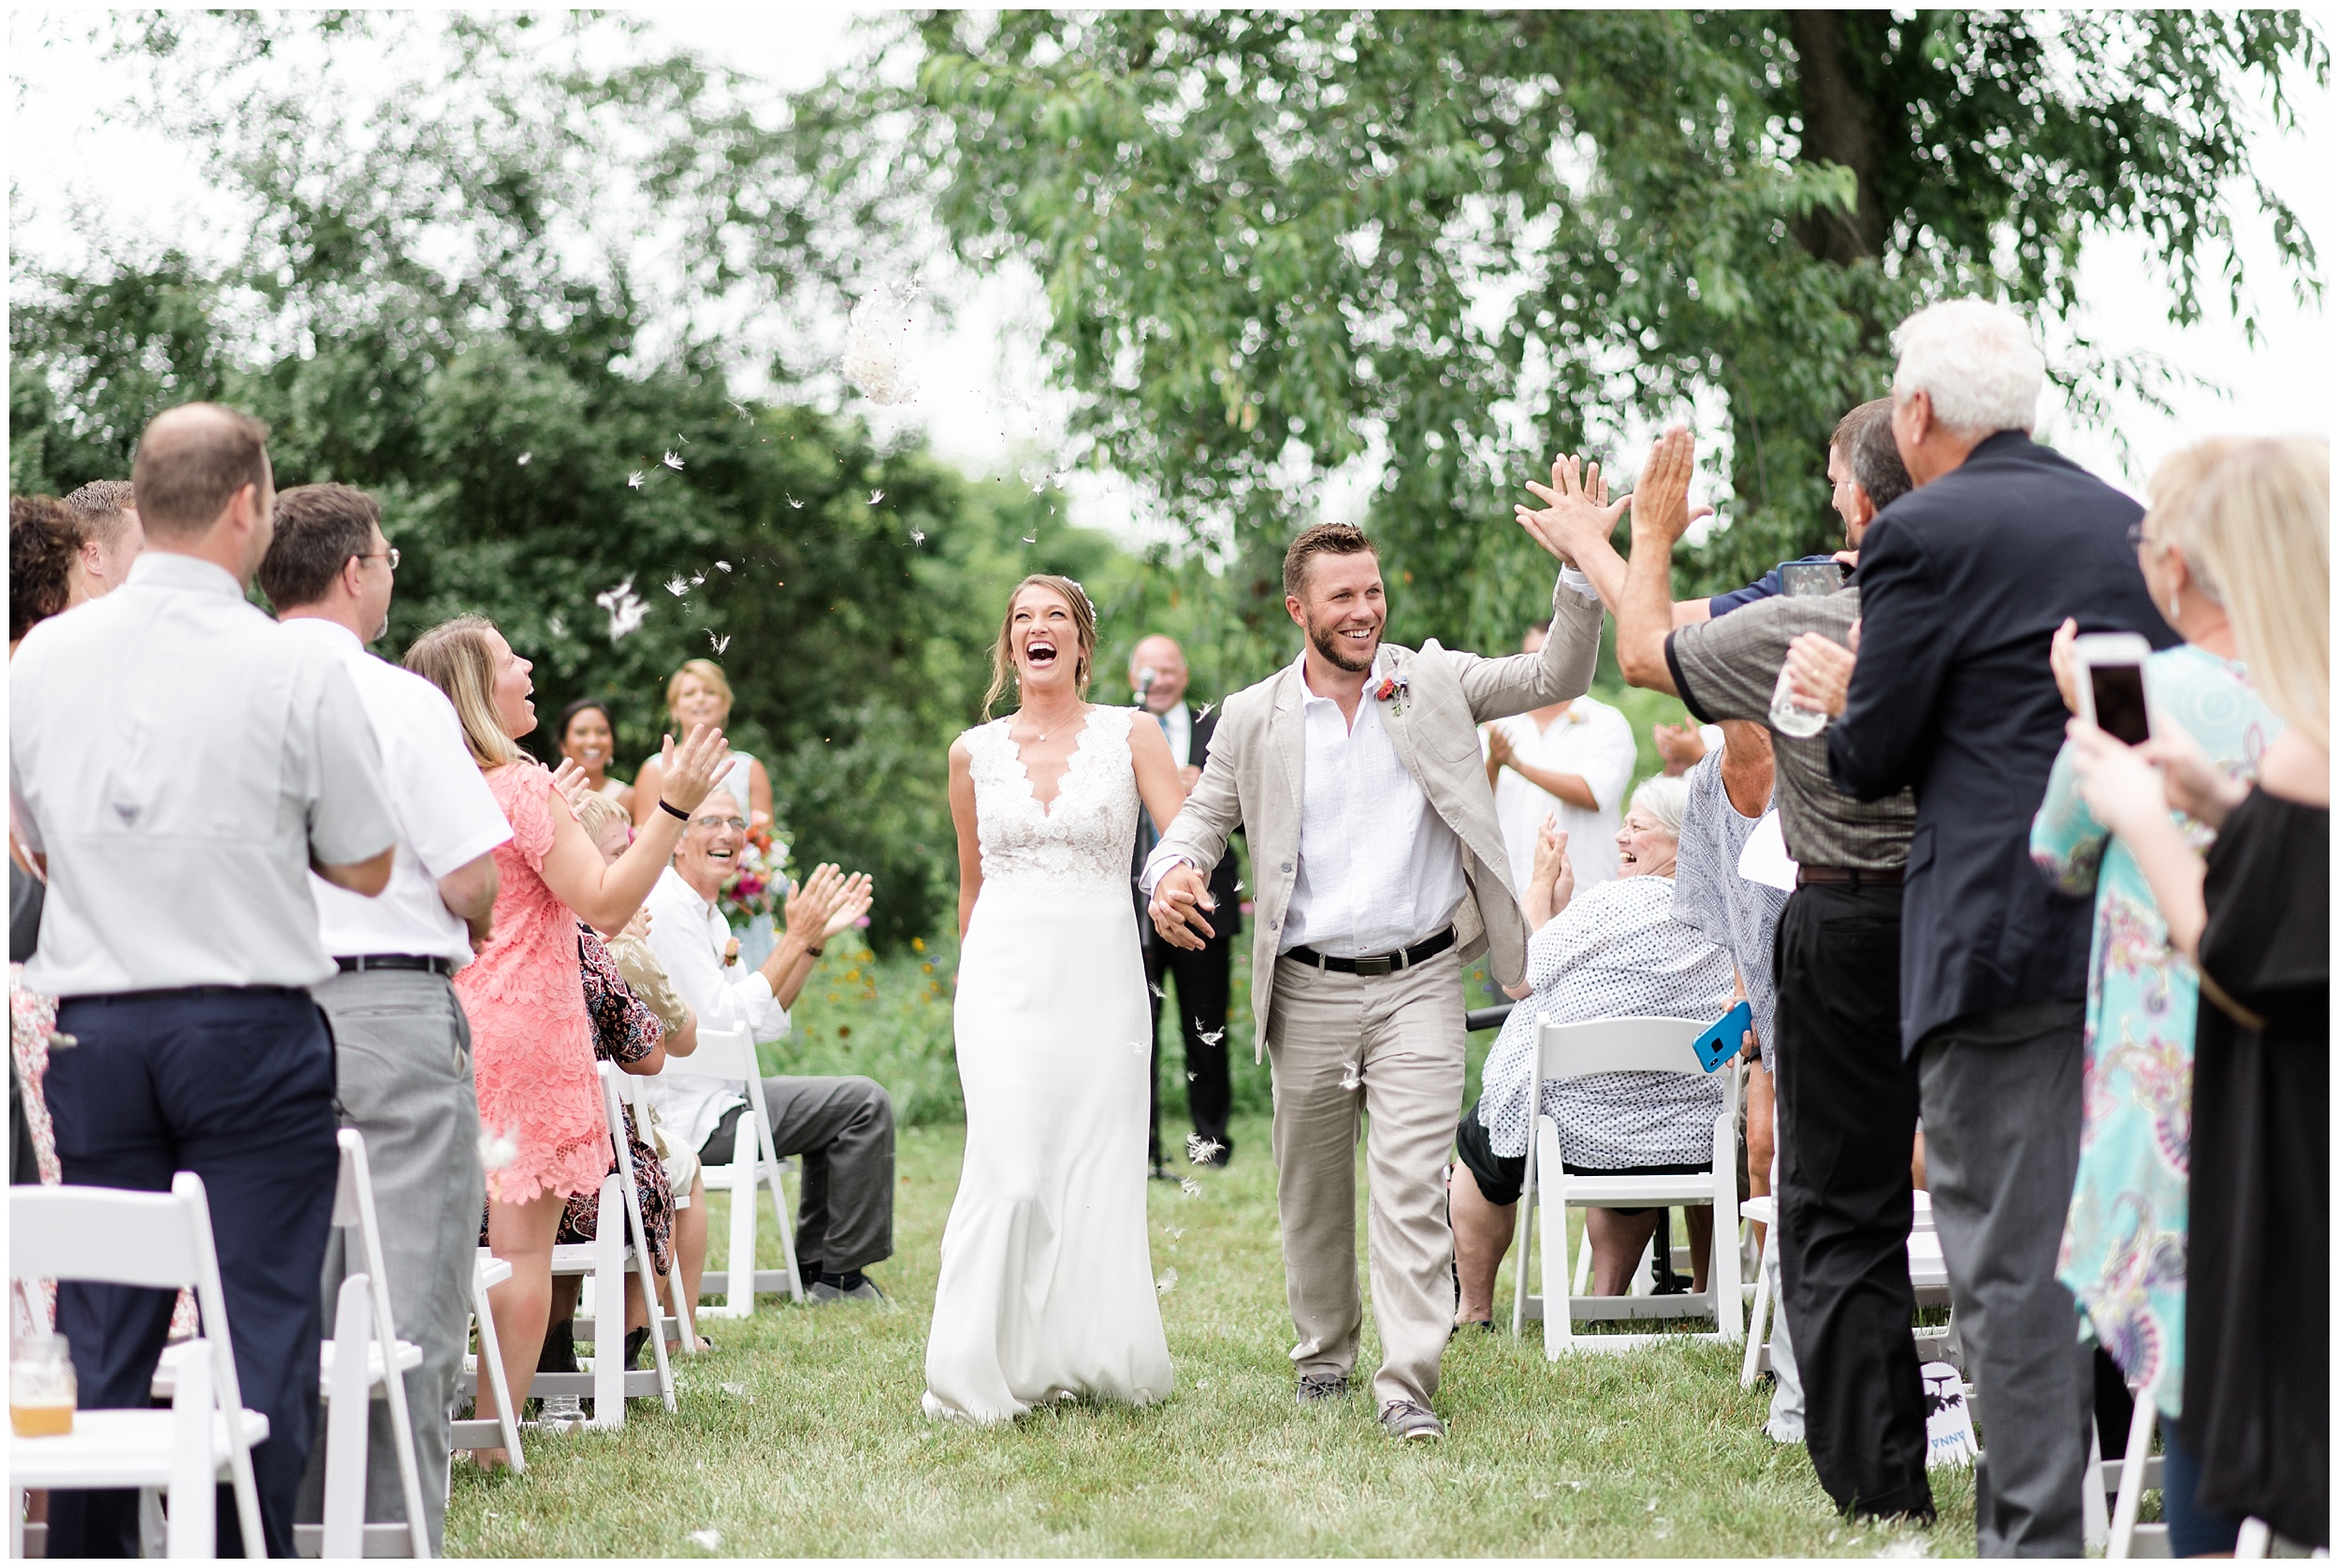 Whimsical-Ethereal-July-Kalamazoo-Wedding-Bright-Airy-Documentary-Milwaukee-Photographer_0042.jpg